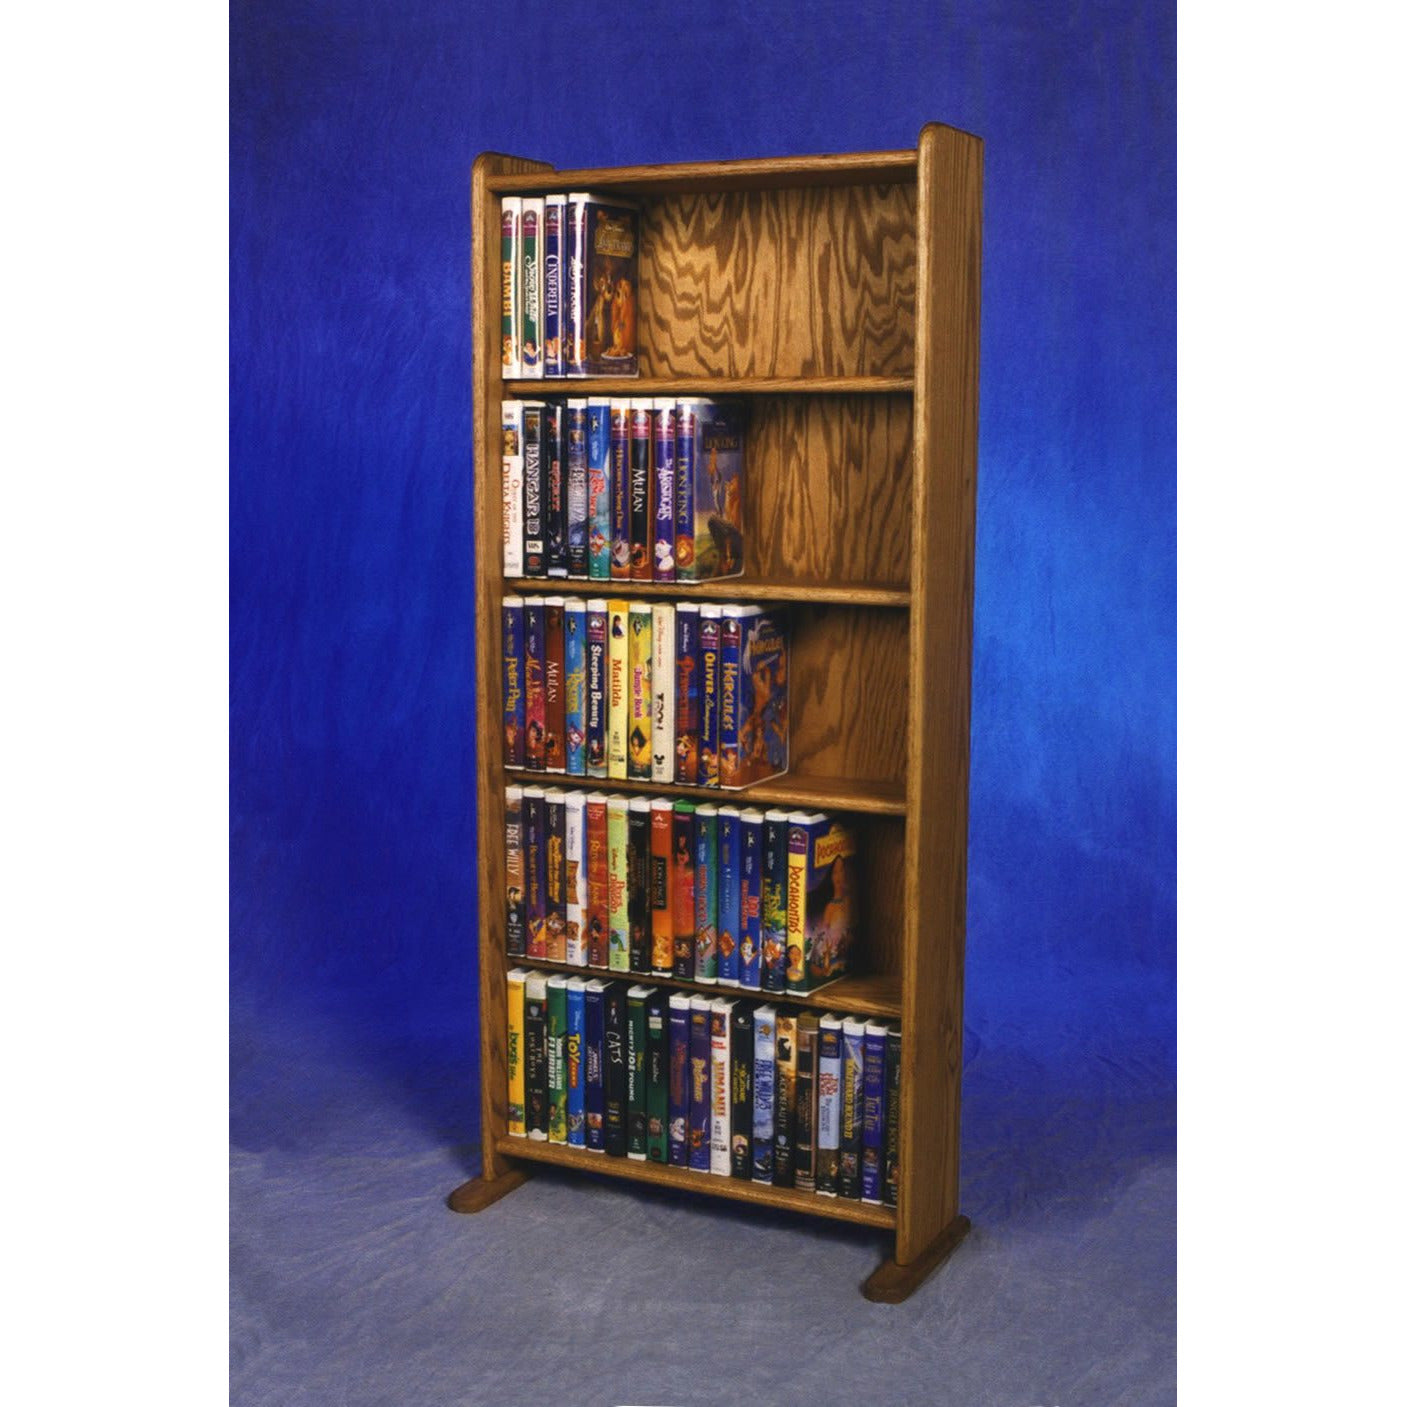 Model 507 VHS & DVD Storage Rack